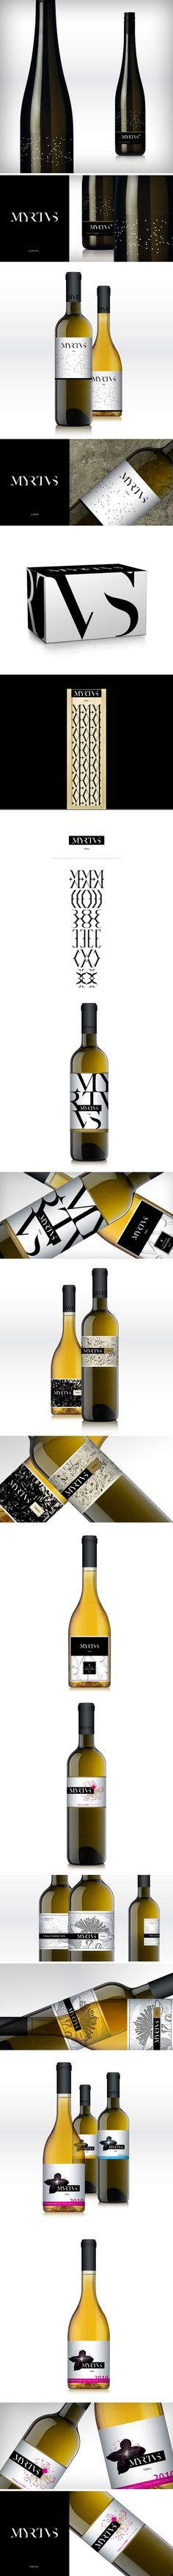 "Myrtus winery by KissZsombor - Identity and package design concept for Myrtus winery.    ""Myrtus is a Hungarian winery in the world famous wine region of Tokaj. Myrtus also the name of a Mediterranean plant."""